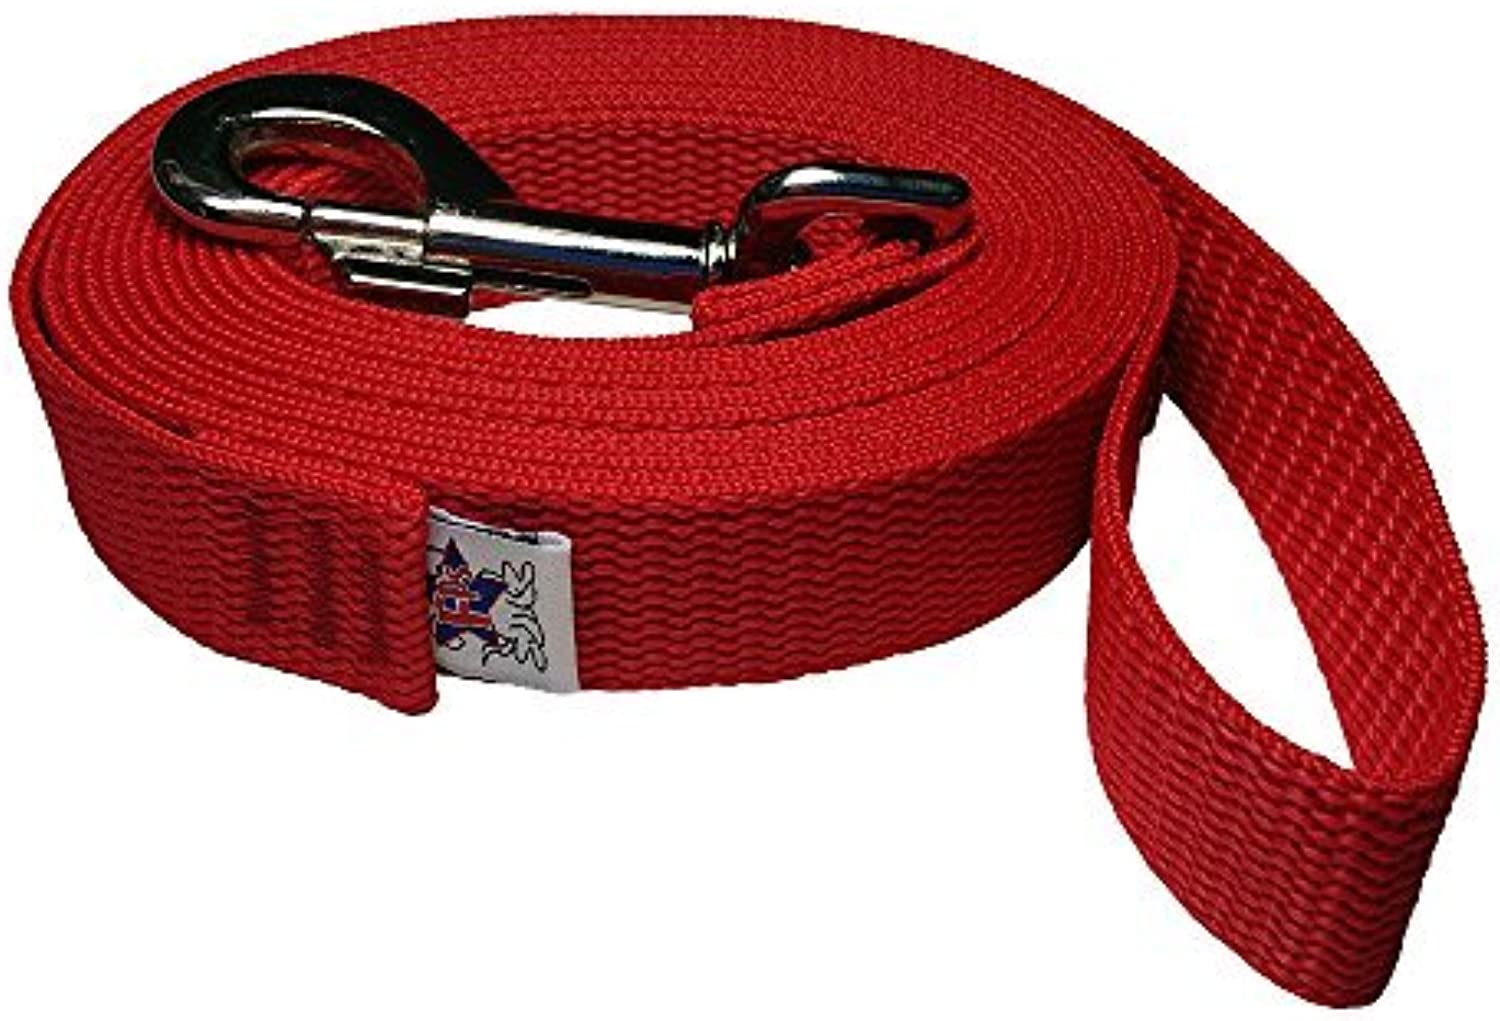 Freedom Pet 1 inch Polypropylene Dog Leash FPSPP50 Select Your Length and color (Firehouse Red, 40 FT) by BeastMaster